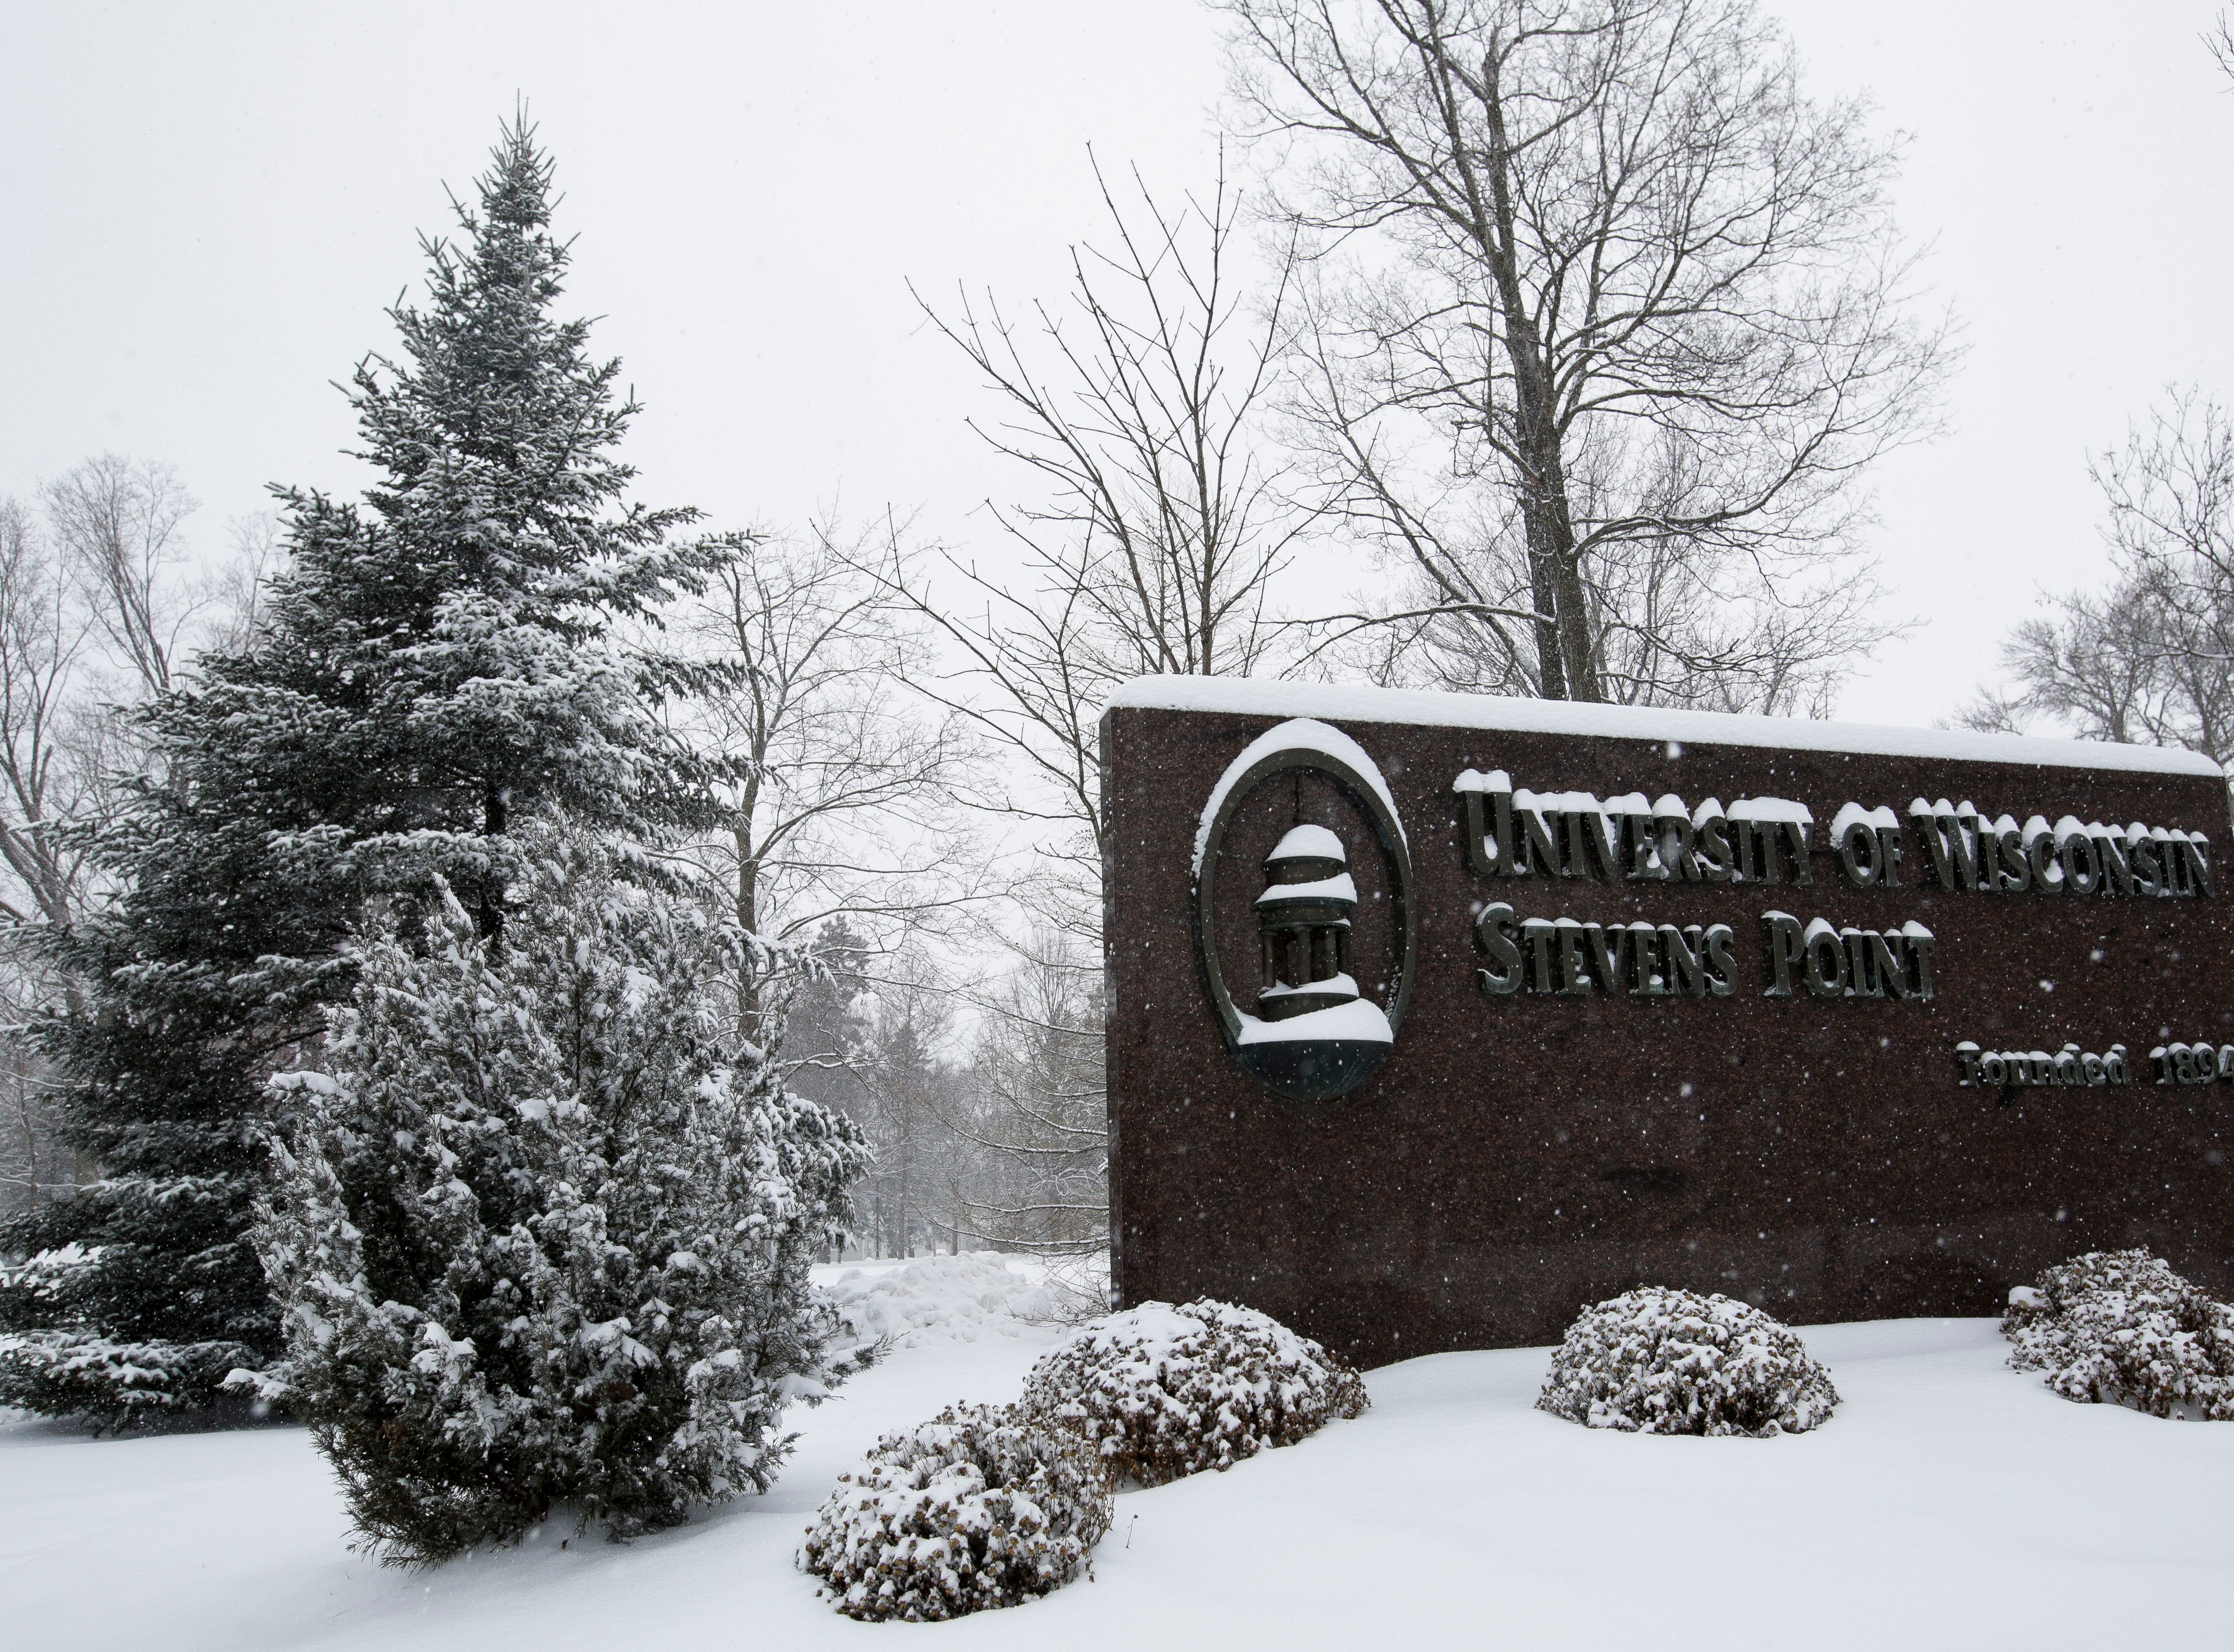 The UWSP campus, as seen on Thursday, February 7, 2019, in Stevens Point, Wis. A winter storm is expected to drop 5-8 inches of snow in the area by the time it clears Thursday evening.